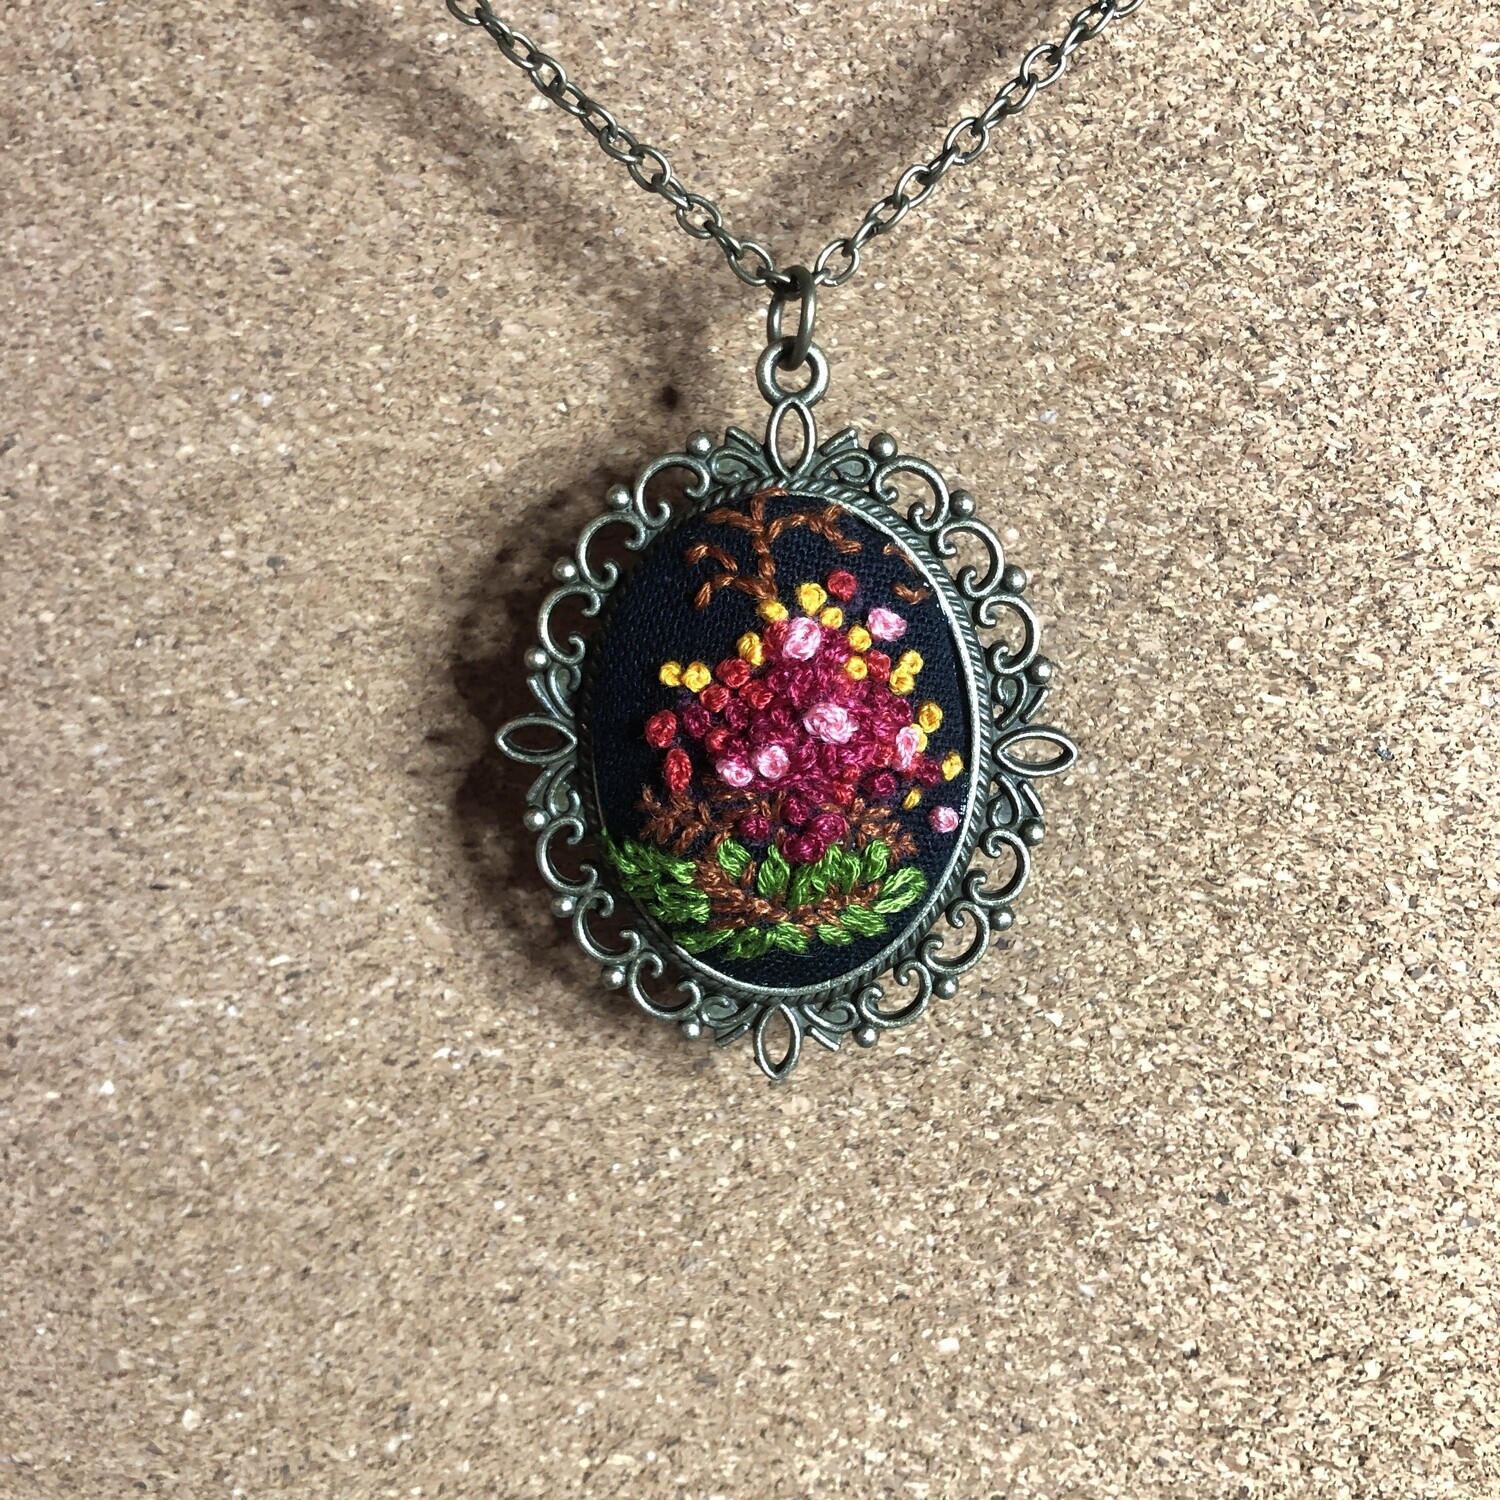 Flowering Bush Necklace - Blossom Flowers - Hand Embroidered Pendant